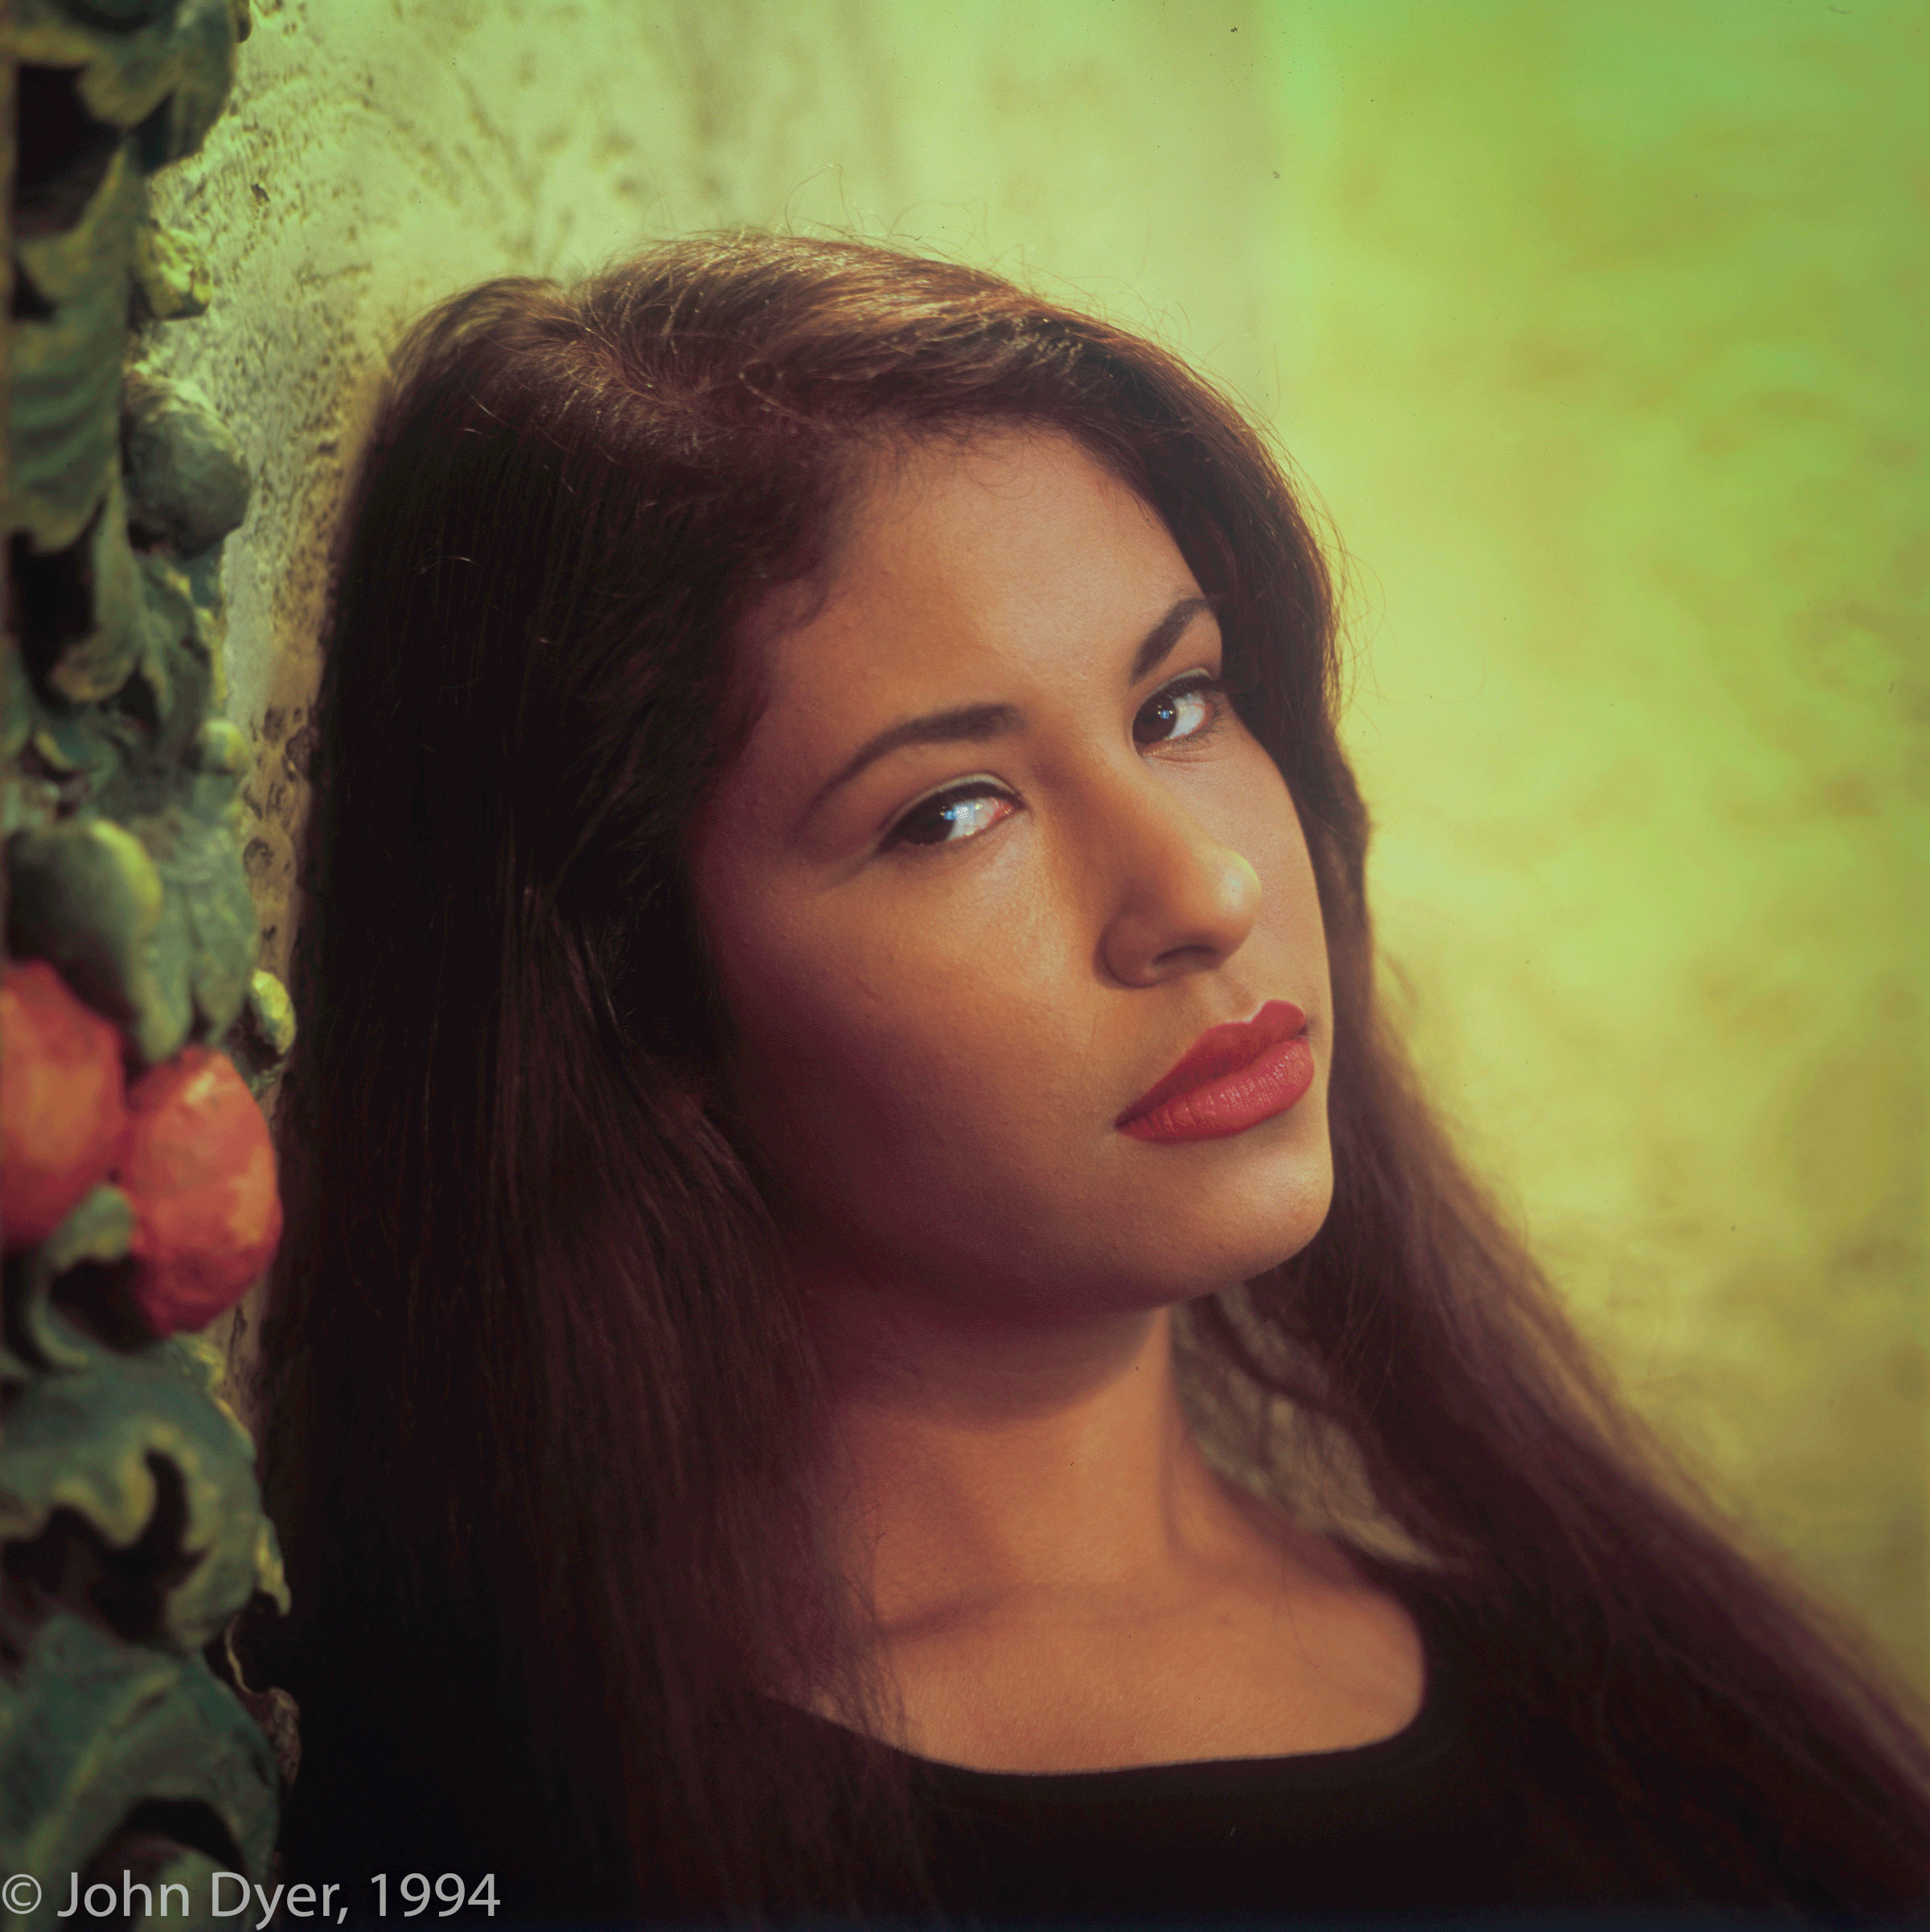 selena quintanilla looking directly into the camera for a photo while resting her head against a wall